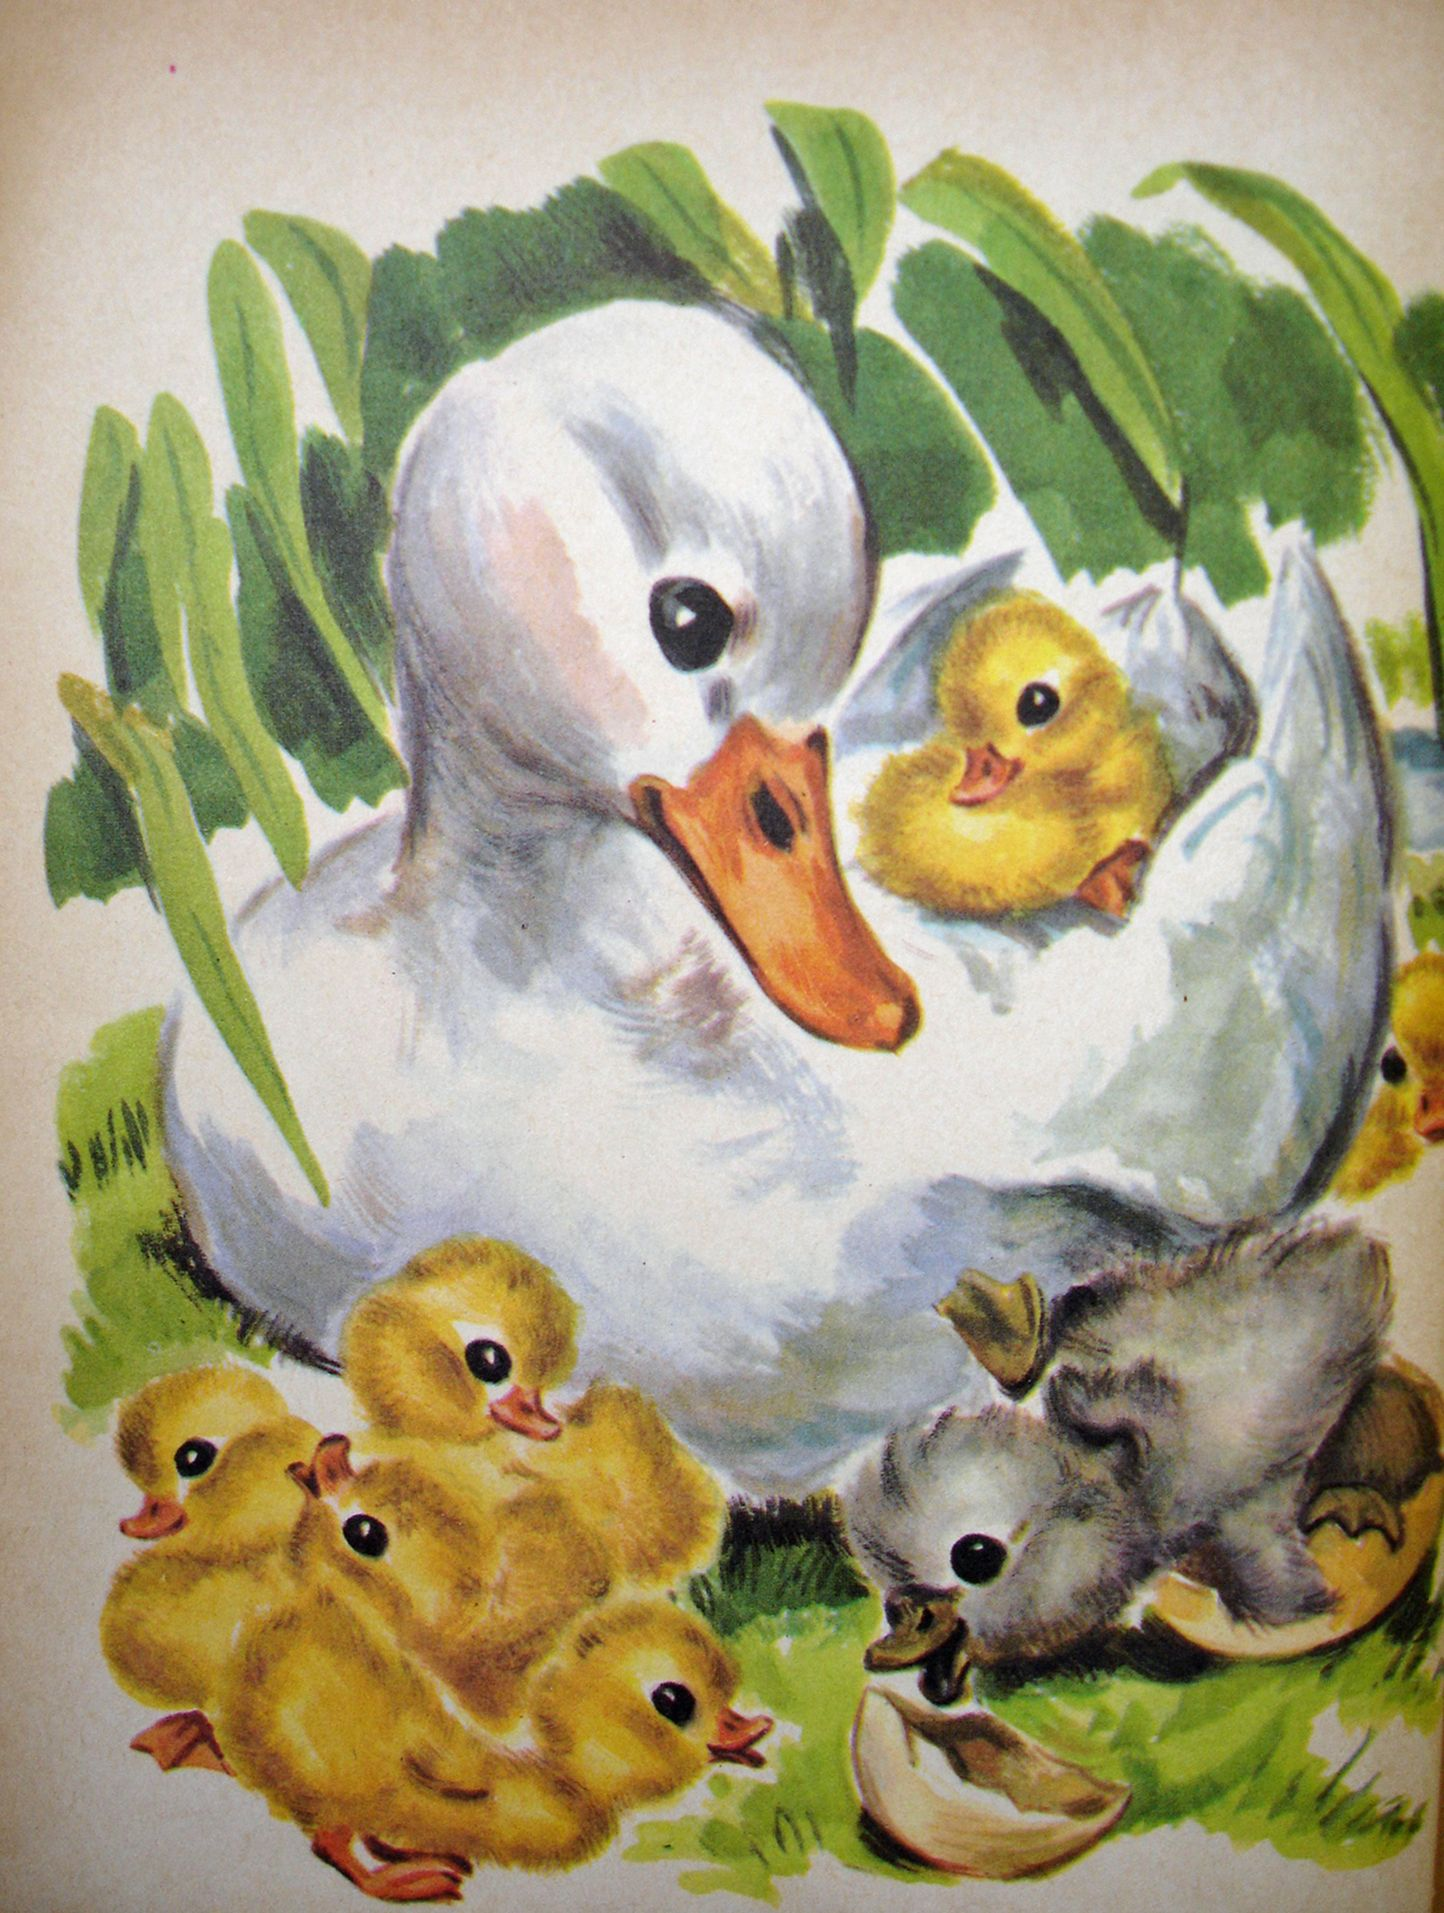 Abstract: The Ugly Duckling by G